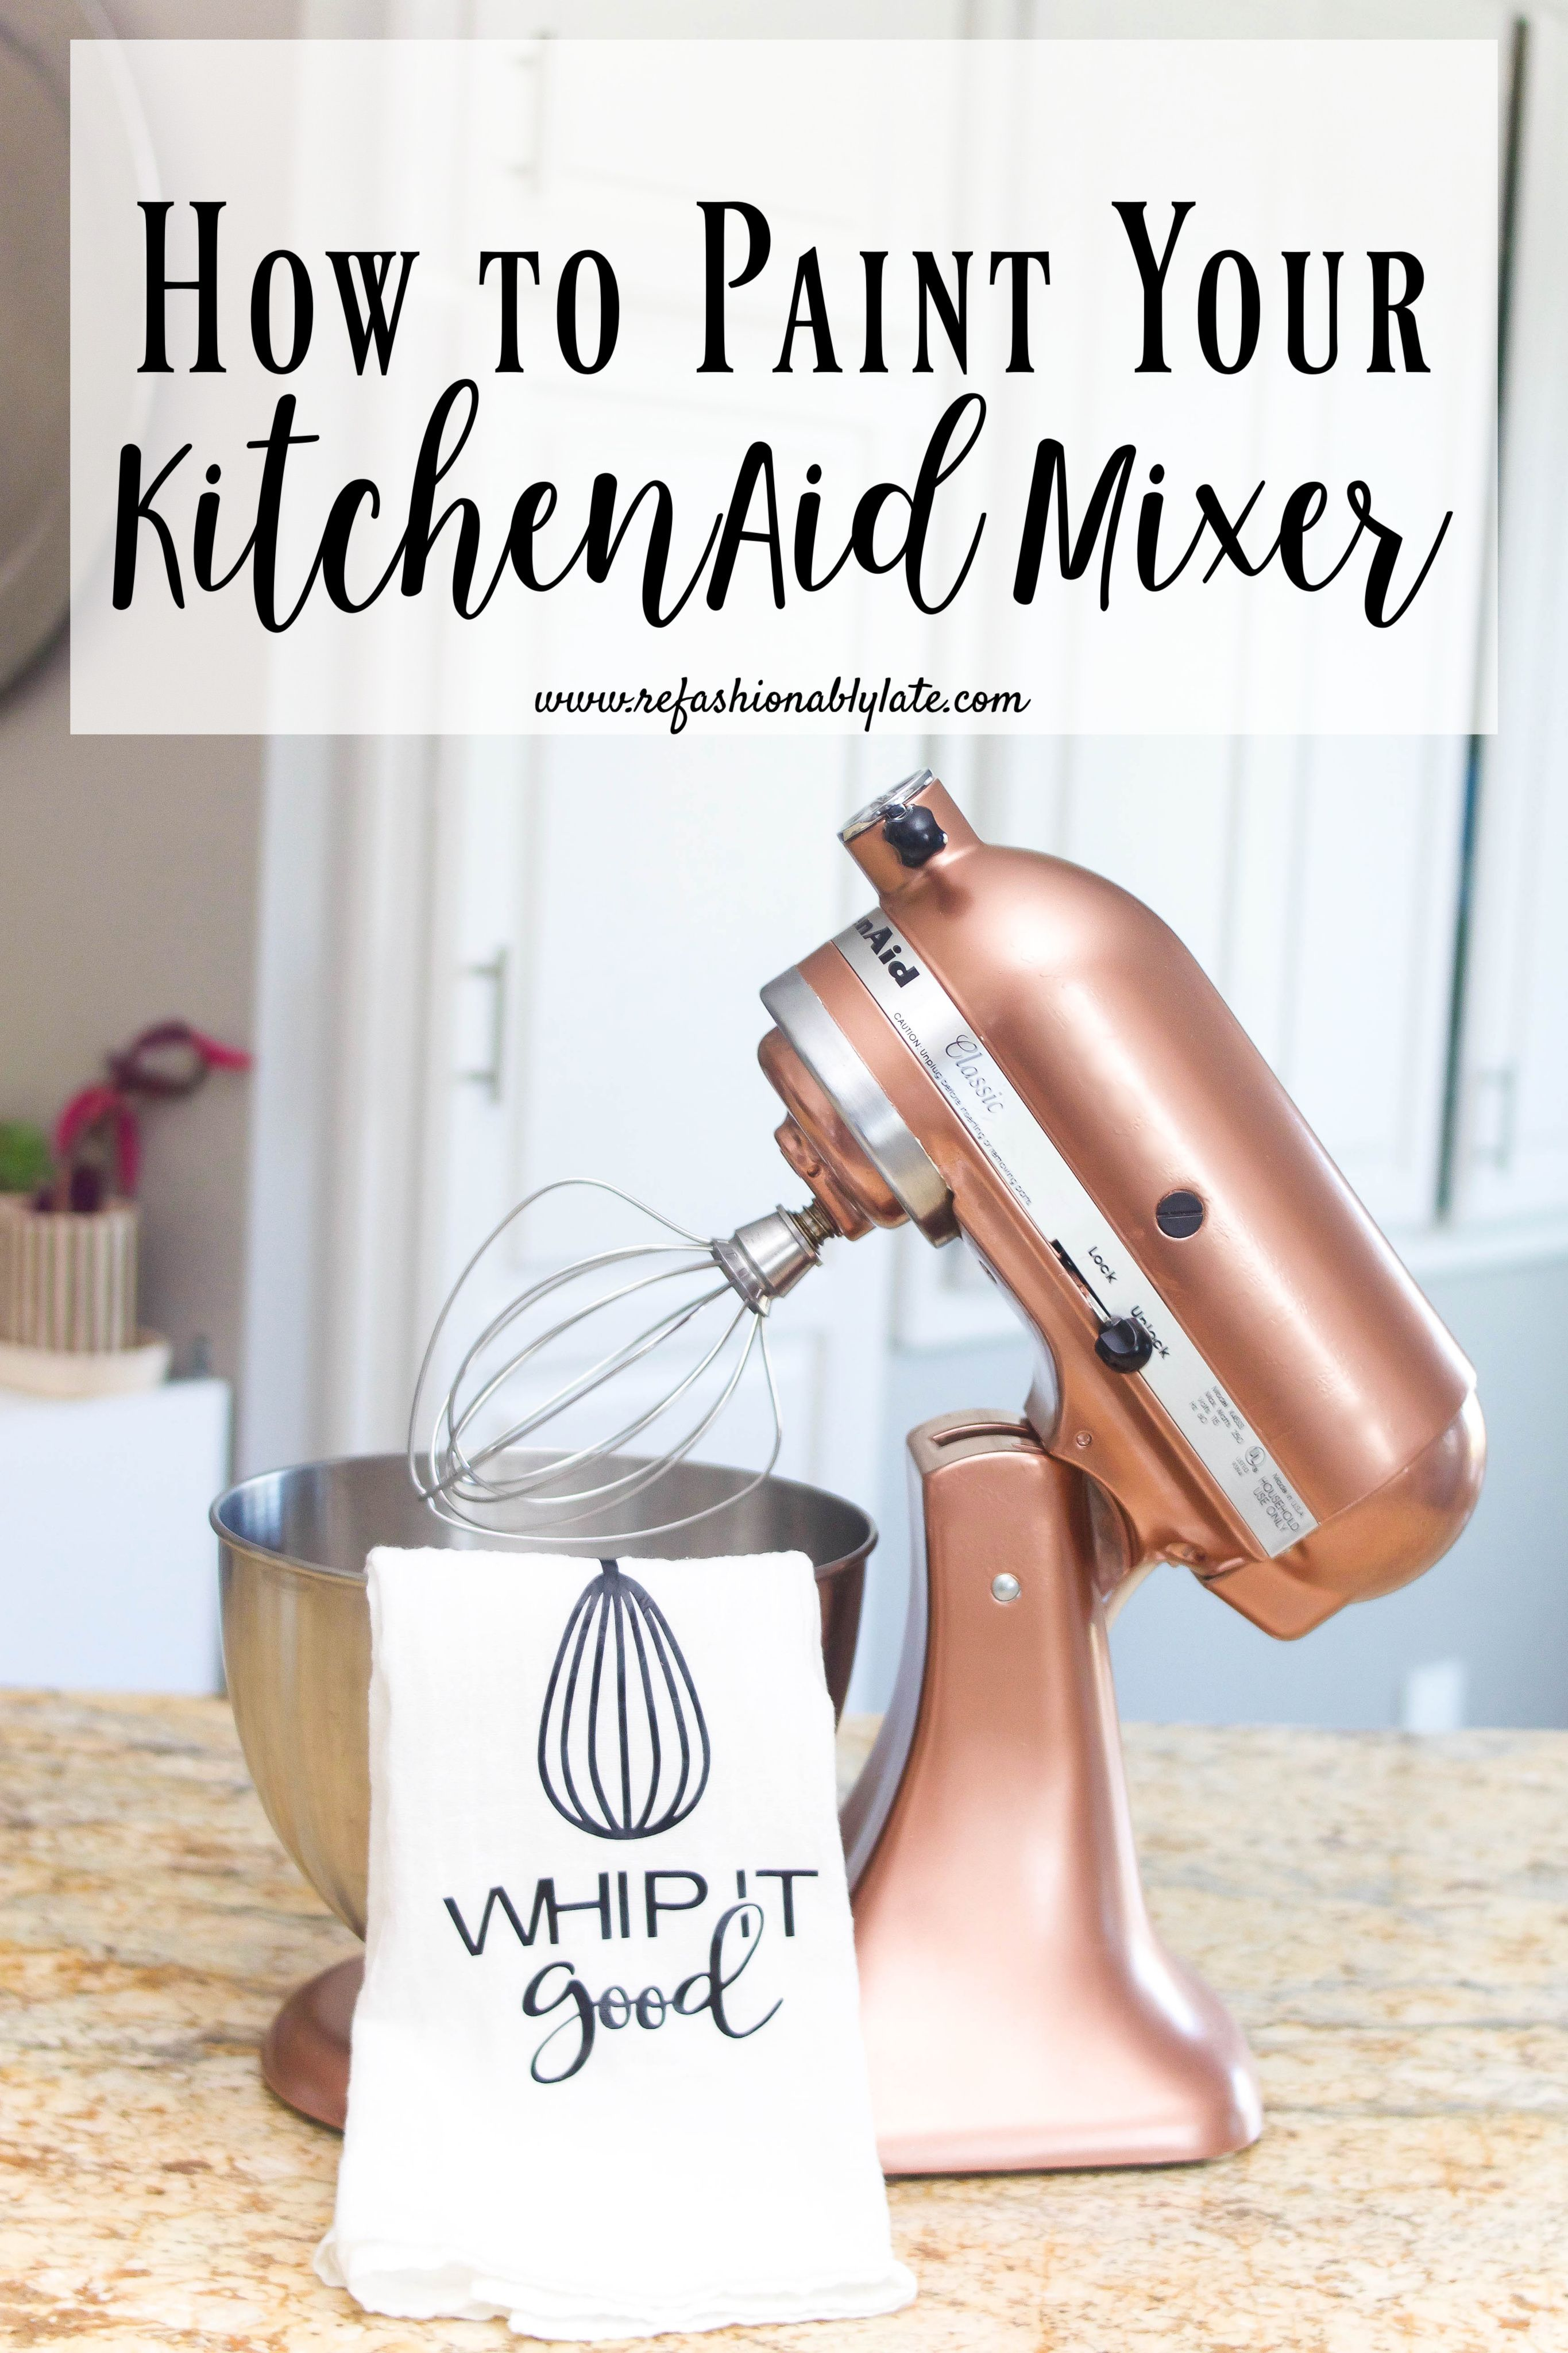 How to Paint a KitchenAid Mixer is part of diy - How to paint a KitchenAid Mixer  Step by step instructions with a video tutorial  A quick and easy project to add to your weekend to do list! refashionablylate KitchenAidMakeover KitchenAid copperKitchenAid DIY MixerMakeover StandingMixer